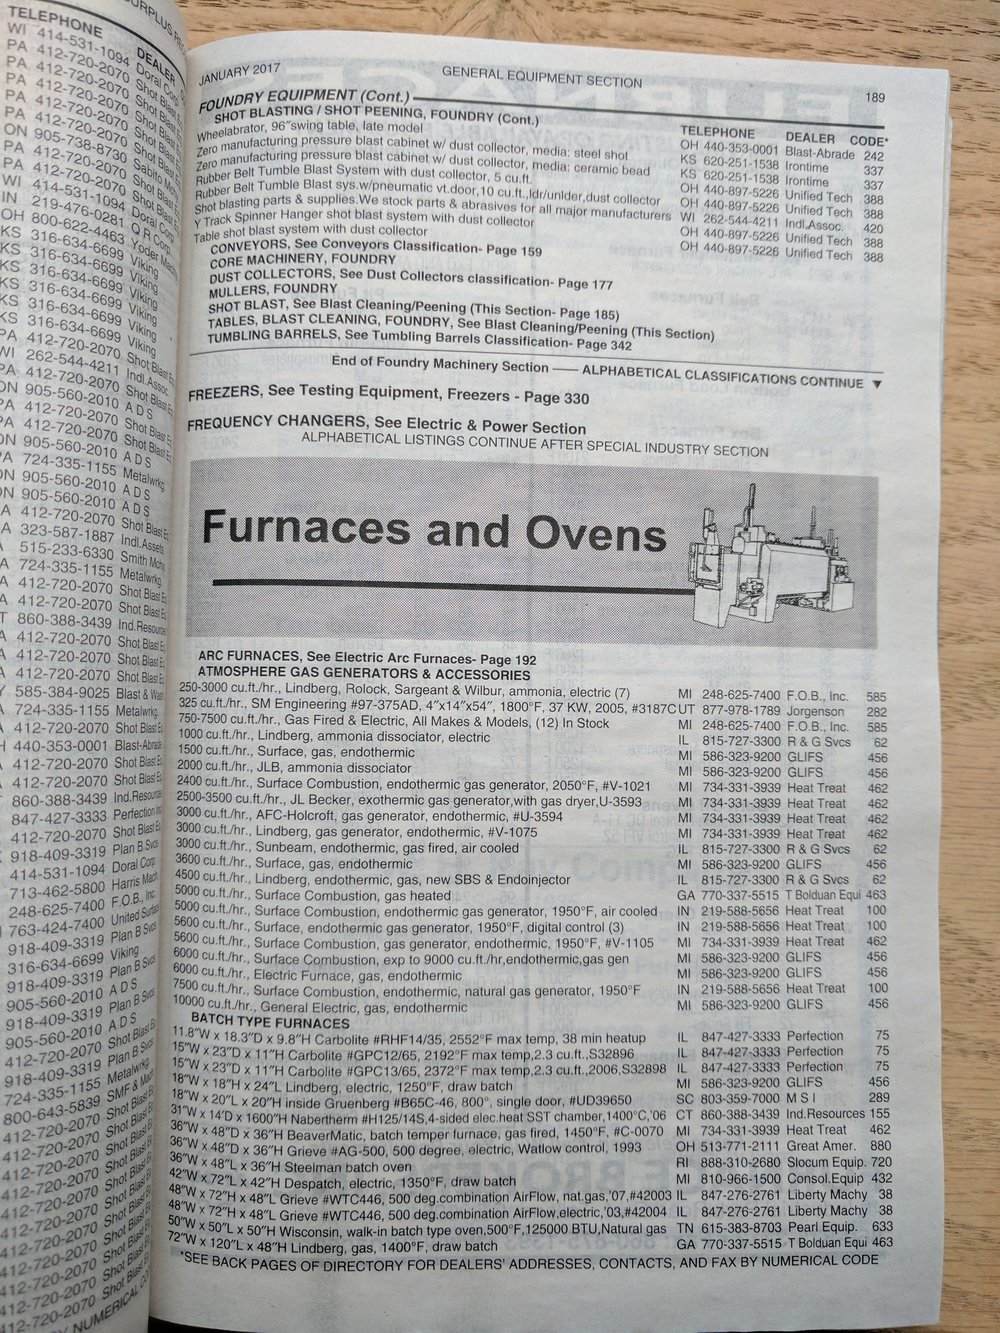 The inside of a category page within the directory.